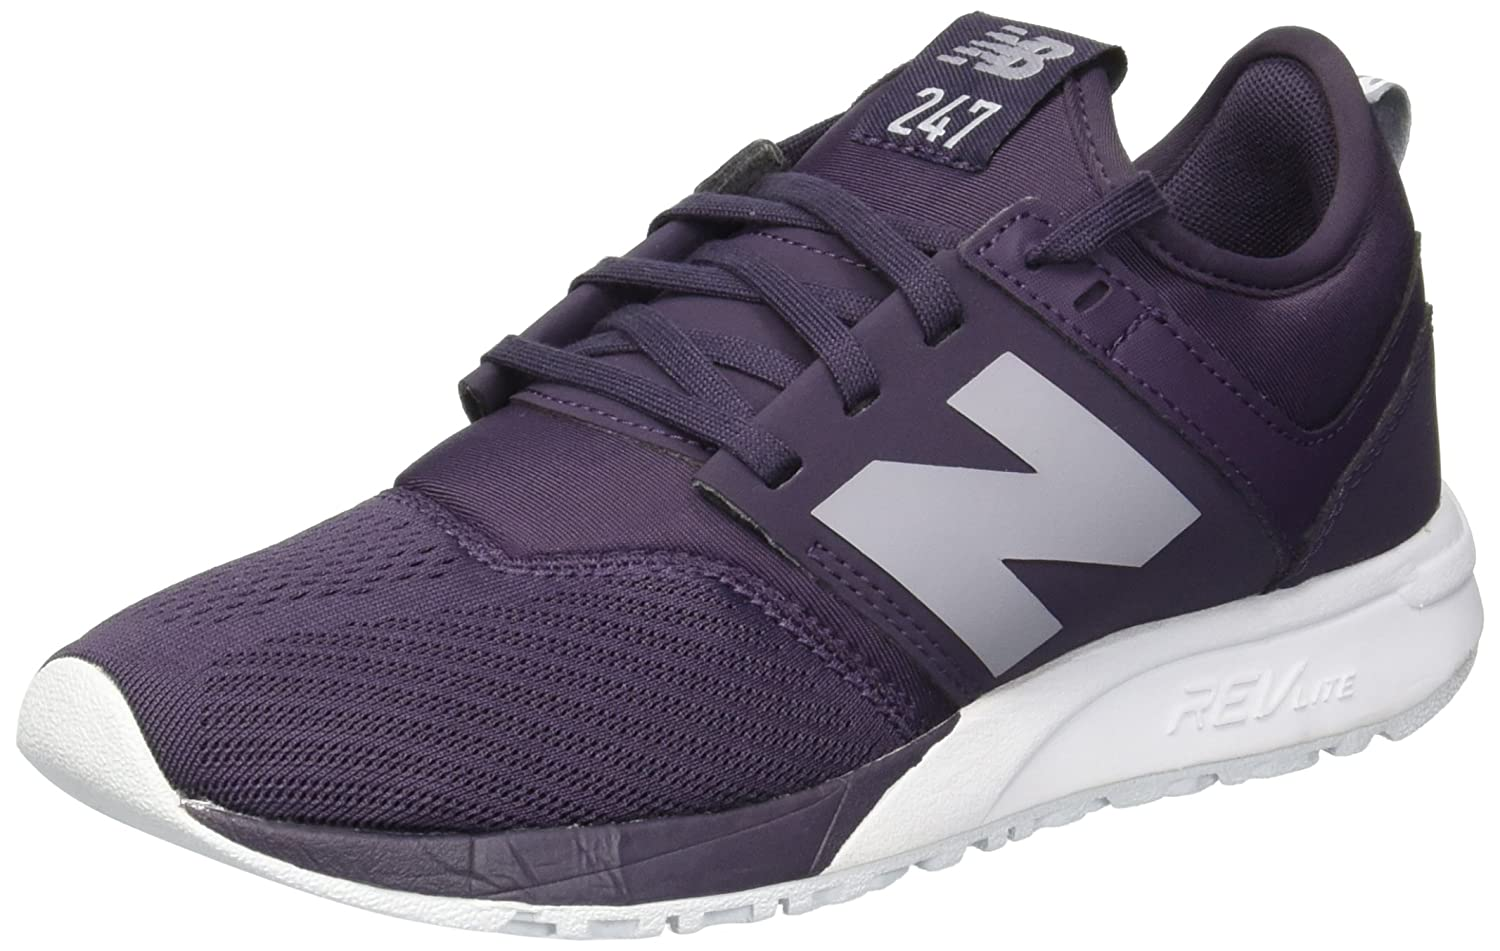 New Balance Women's 247v1 Sneaker B075R6VJF2 7 B(M) US|Elderberry